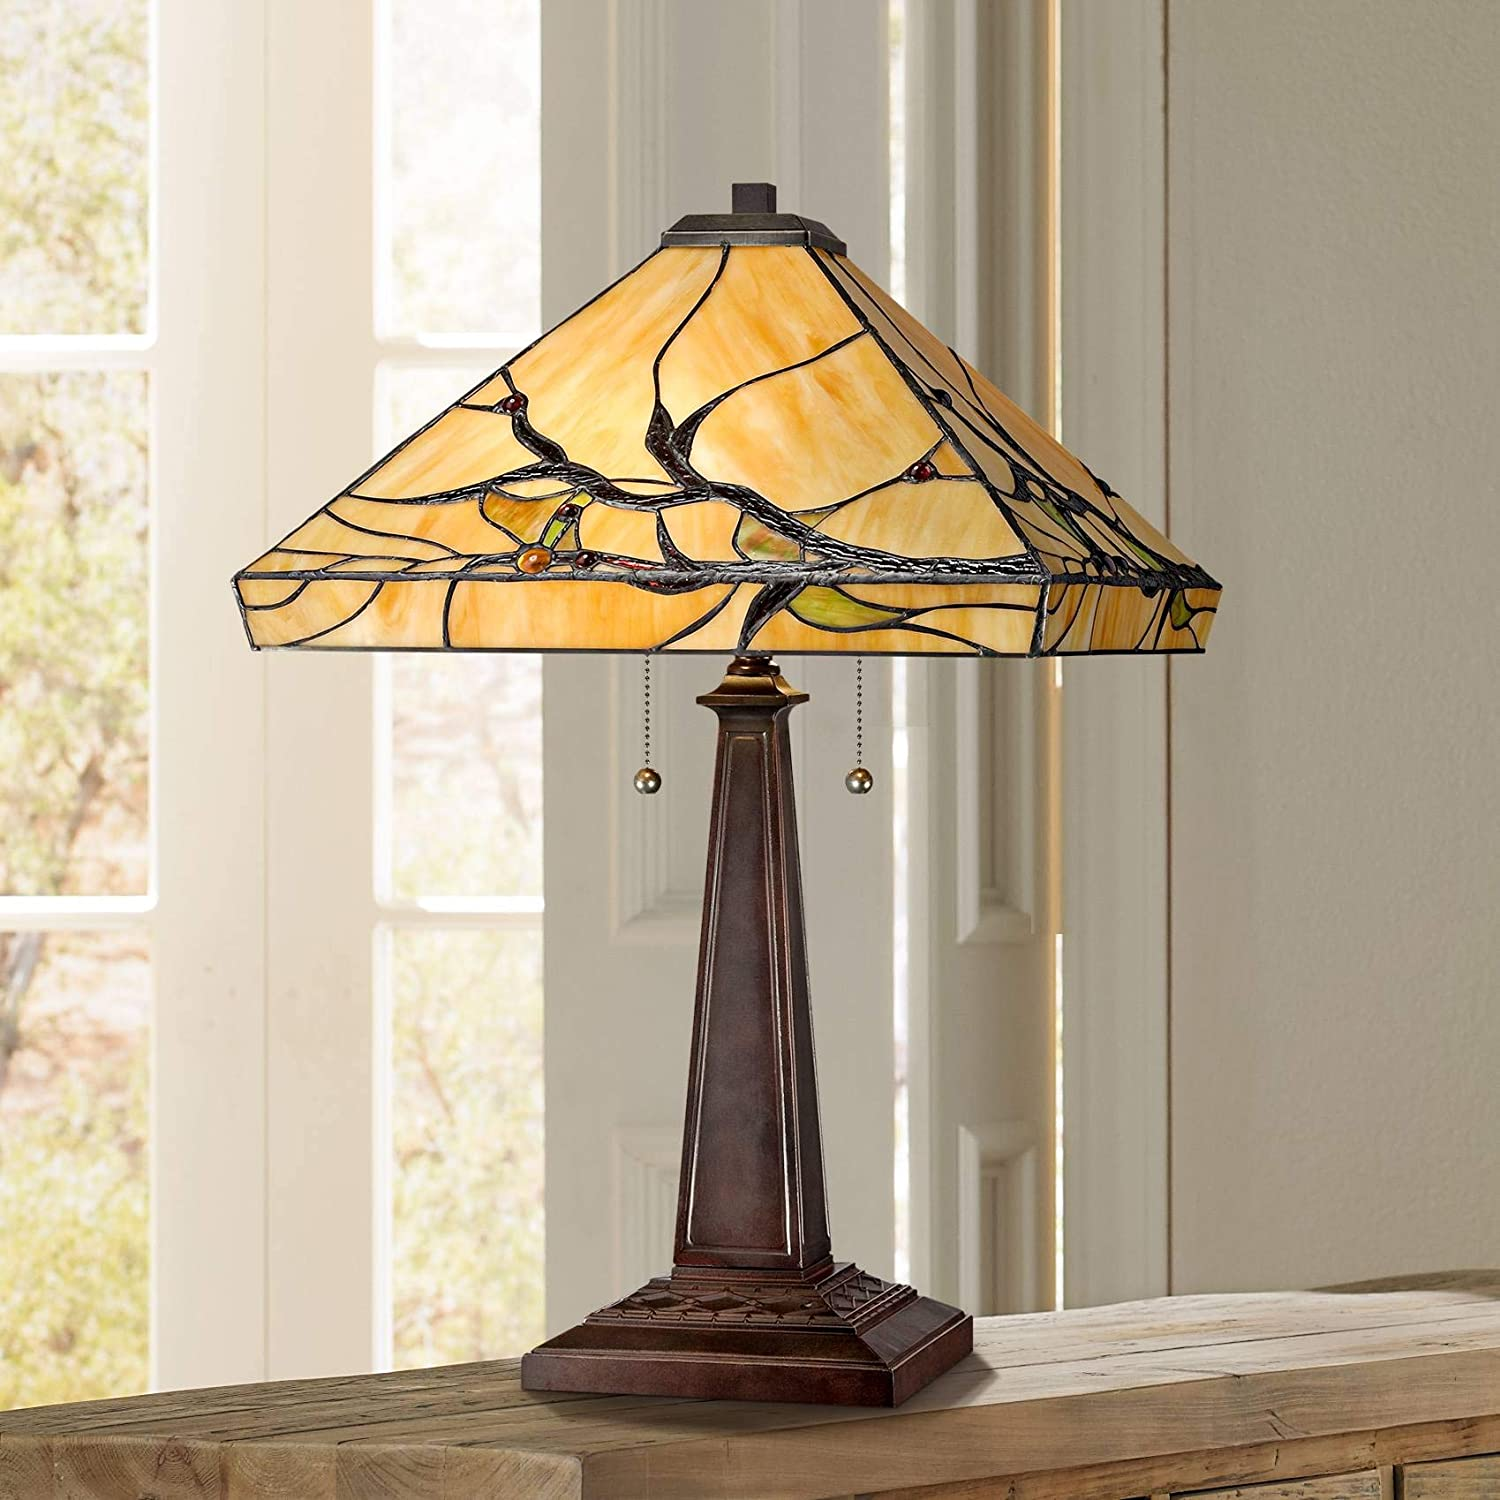 Budding Branch Mission Table Lamp Bronze Metal Glass Art Shade for Living Room Family Bedroom Bedside Office